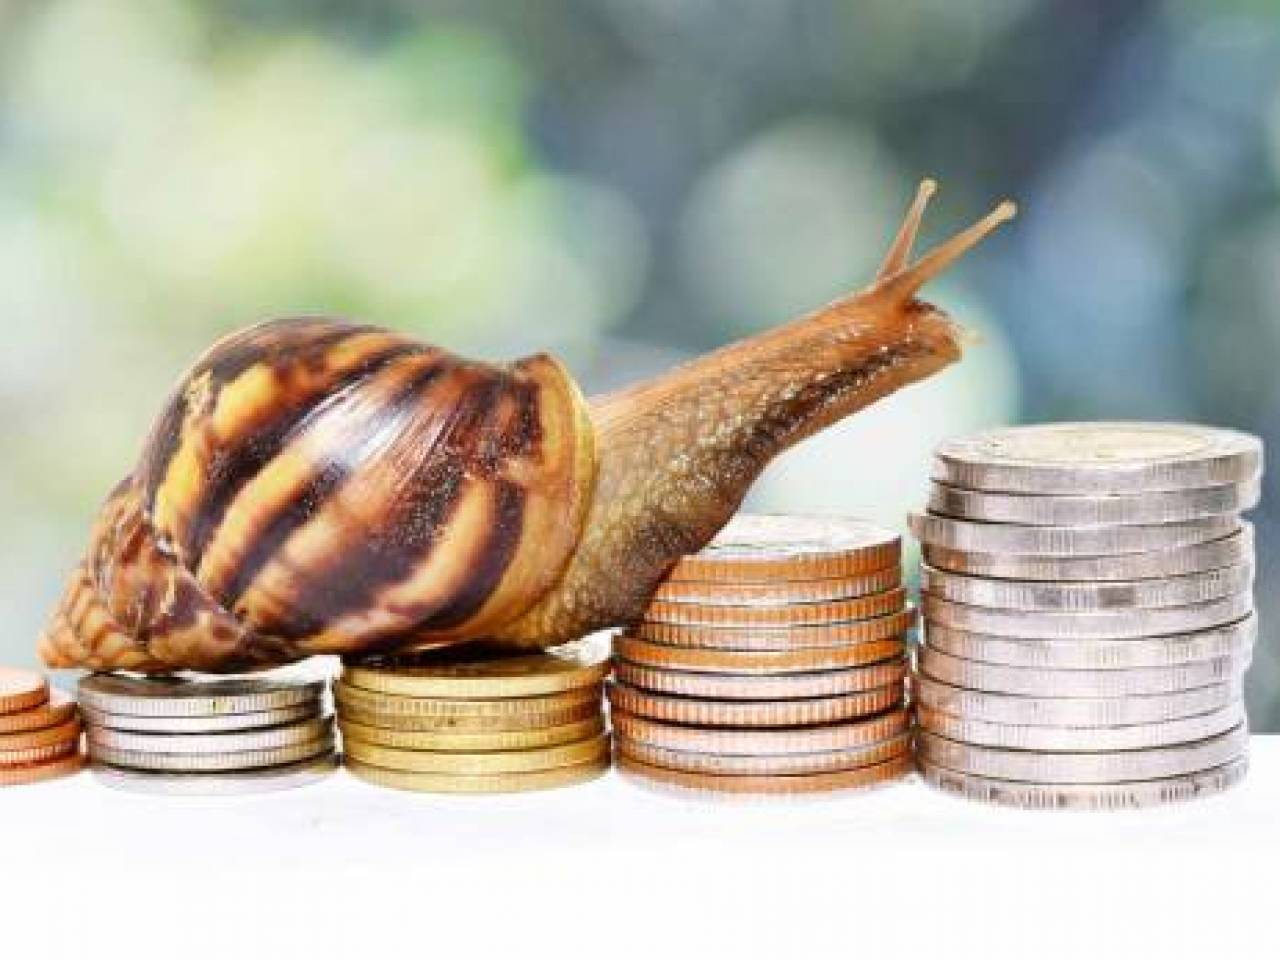 Brown snail climbing the pile of coins